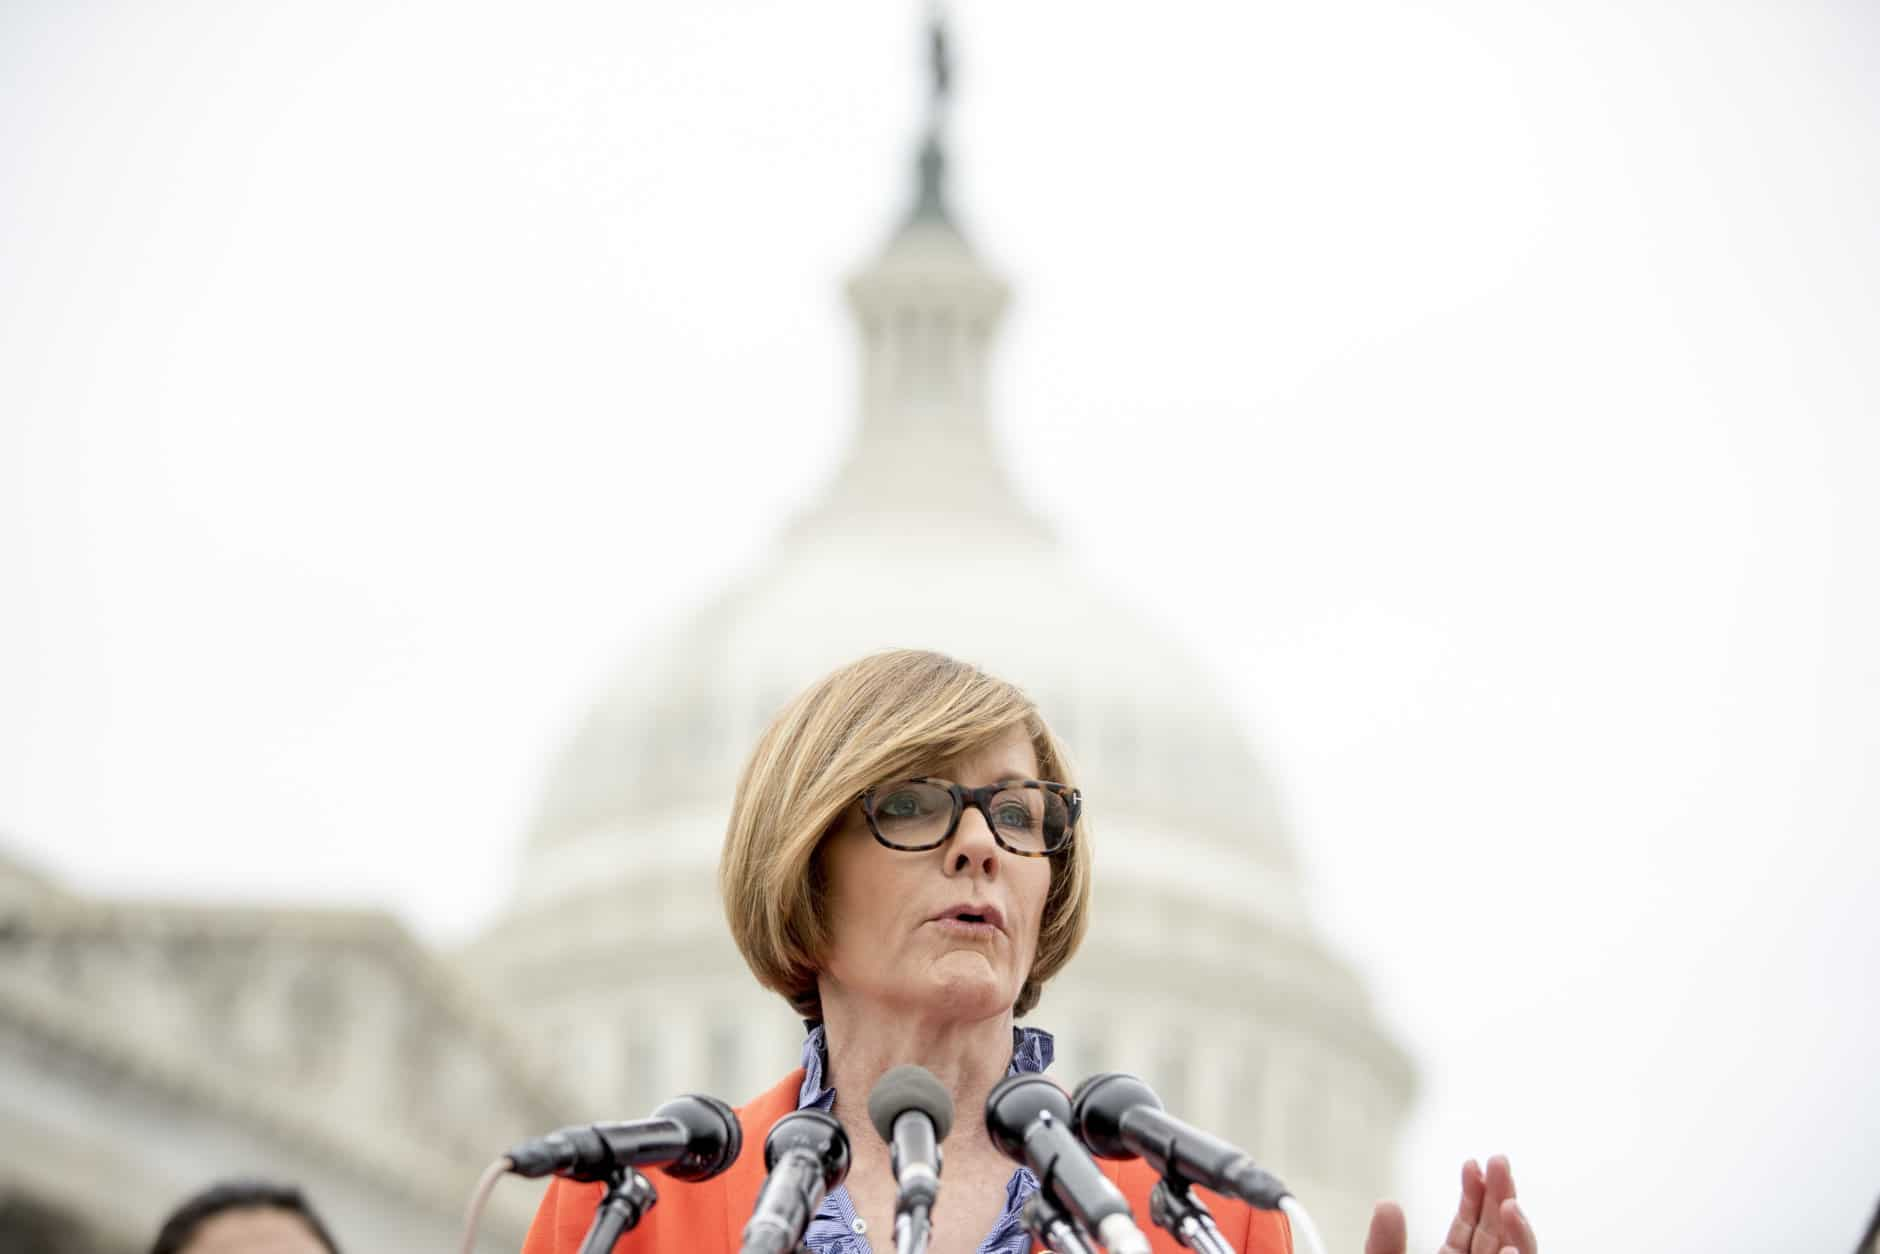 """Rep. Susie Lee, D-Nev., speaks at a news conference on Capitol Hill in Washington, Thursday, Jan. 17, 2019, to unveil the """"Immediate Financial Relief for Federal Employees Act"""" bill which would give zero interest loans for up to $6,000 to employees impacted by the government shutdown and any future shutdowns. (AP Photo/Andrew Harnik)"""